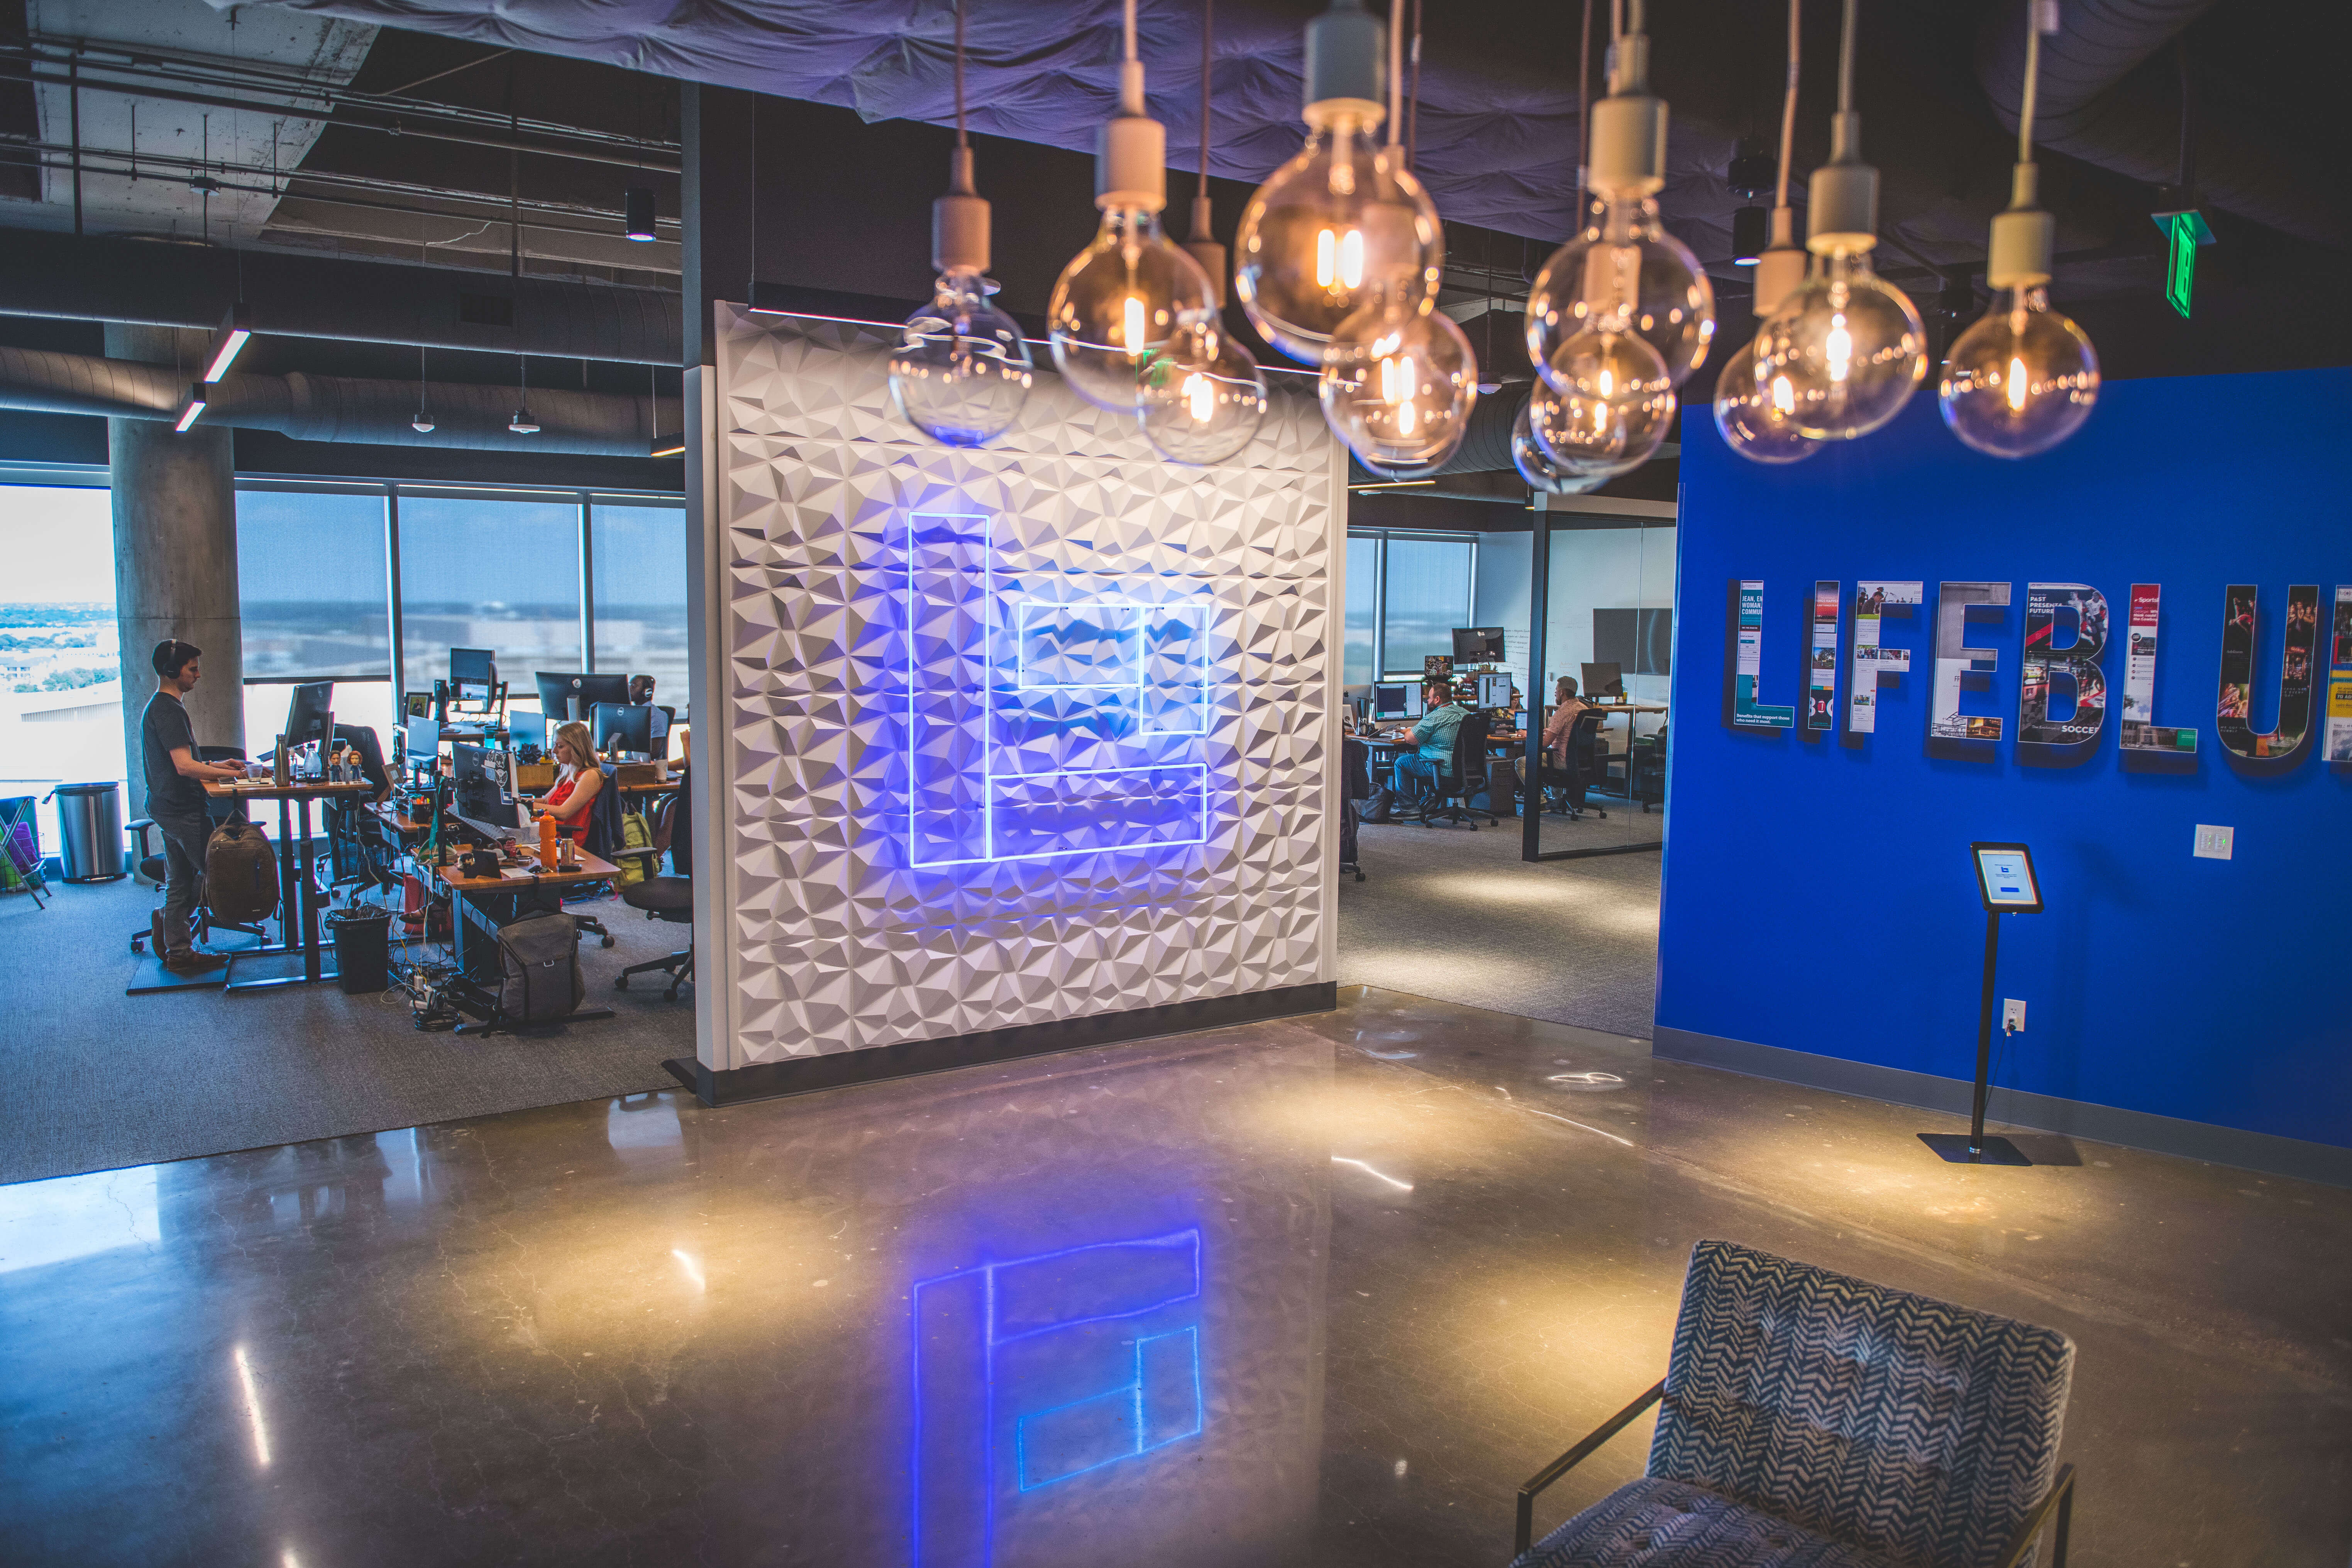 Image showing the lobby of Lifeblue's office